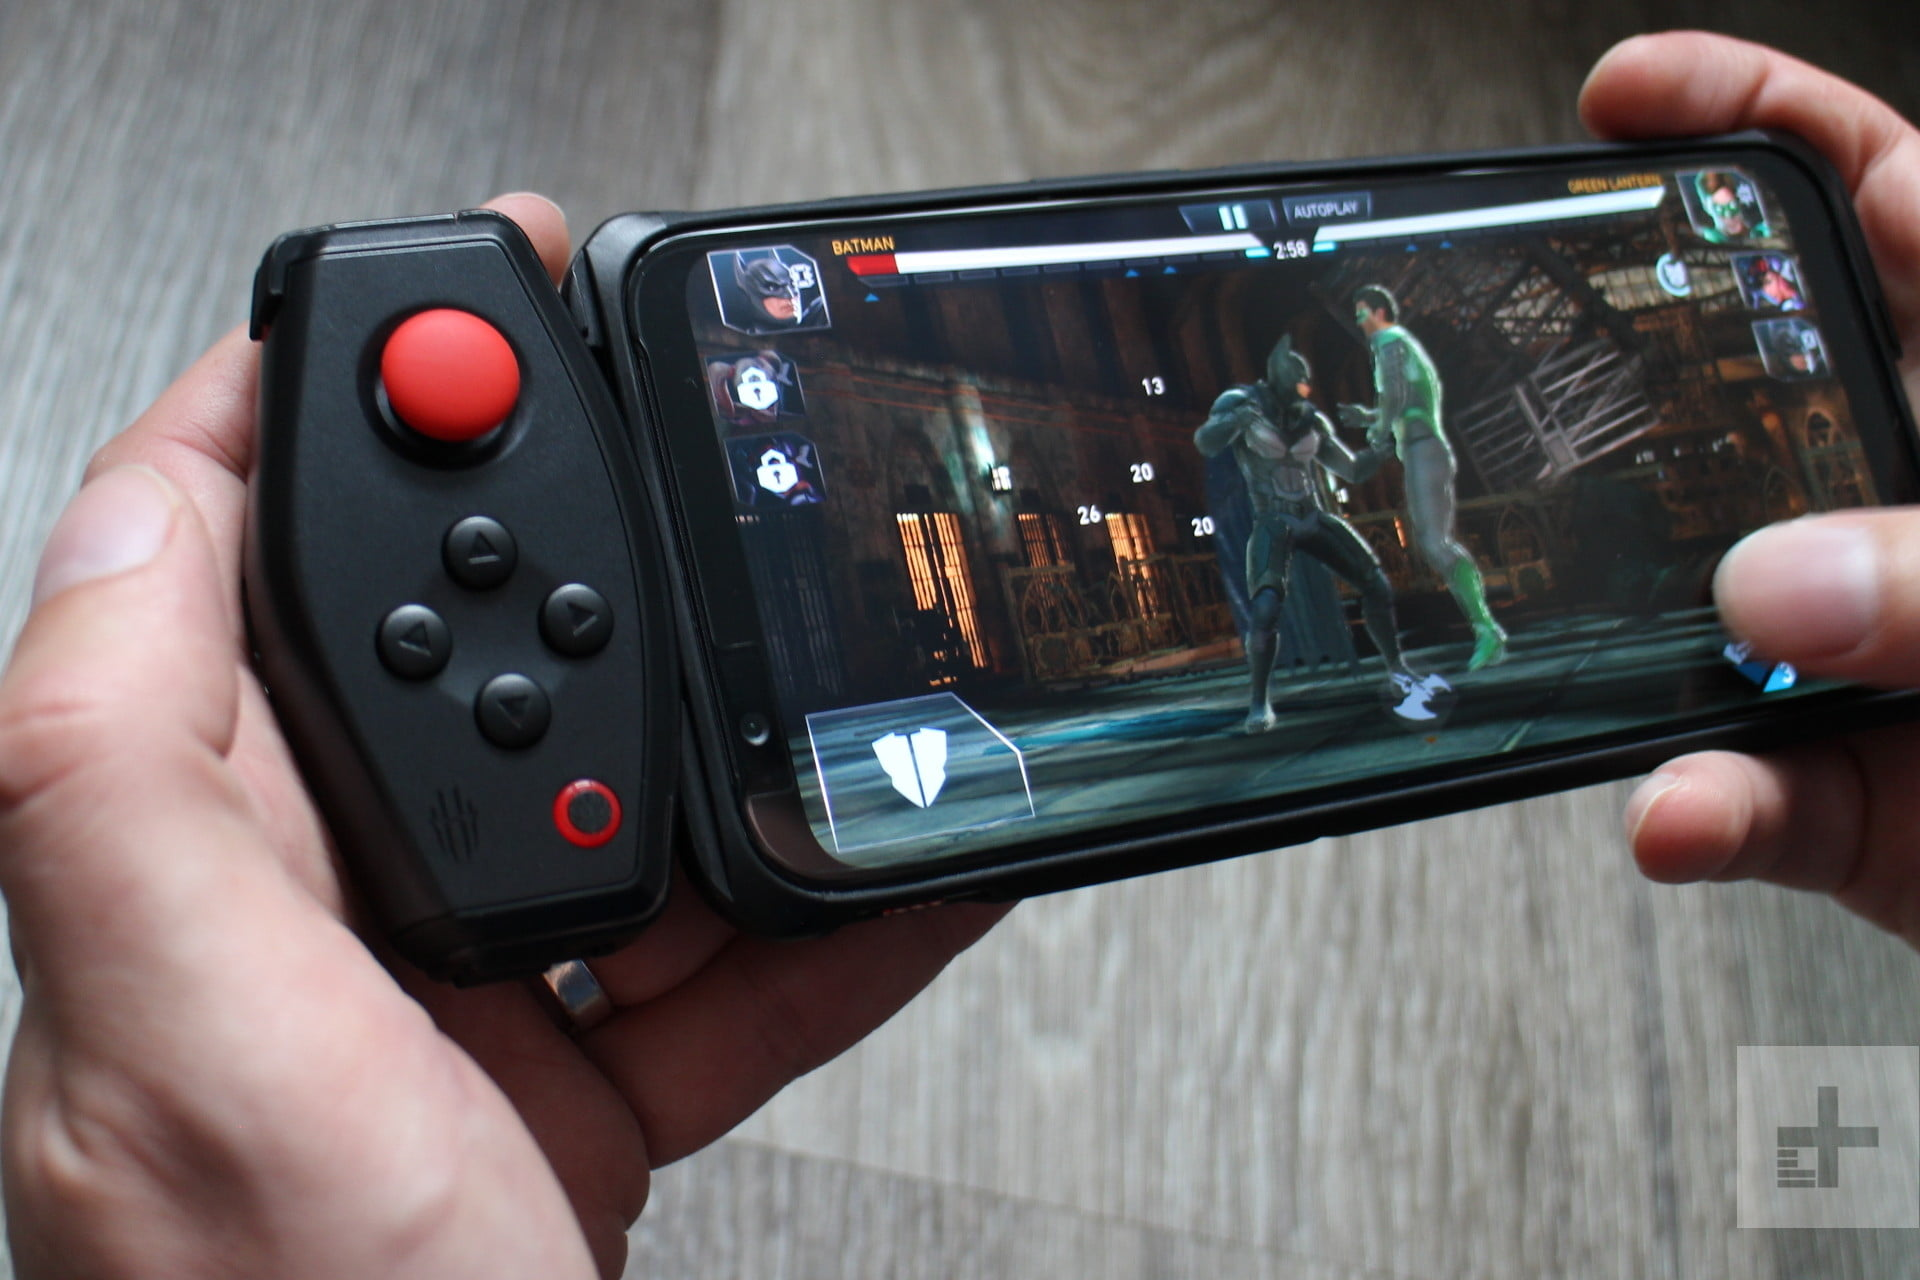 Red Magic 3 Review: The Gaming Phone You've Been Waiting For